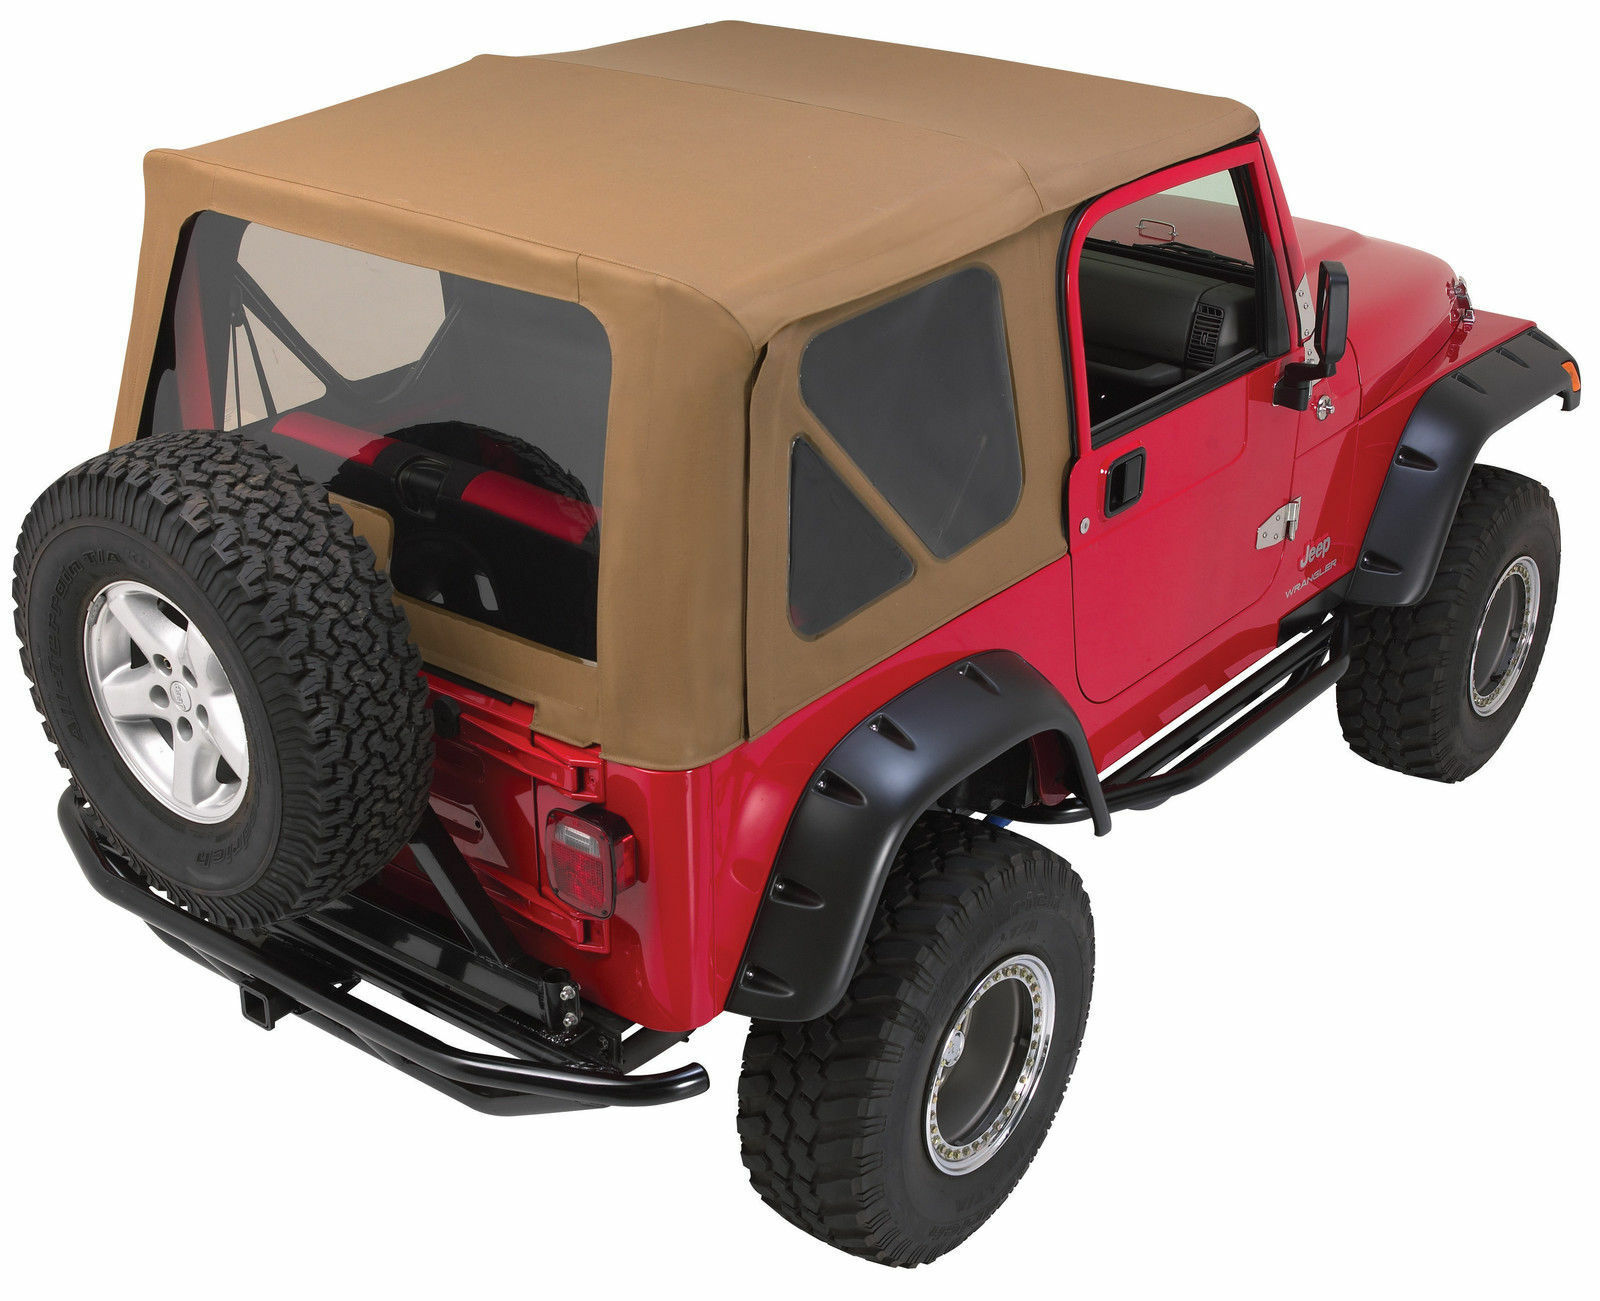 Rampage 97 06 Jeep Wrangler Replacement Soft Top With Upper Doors